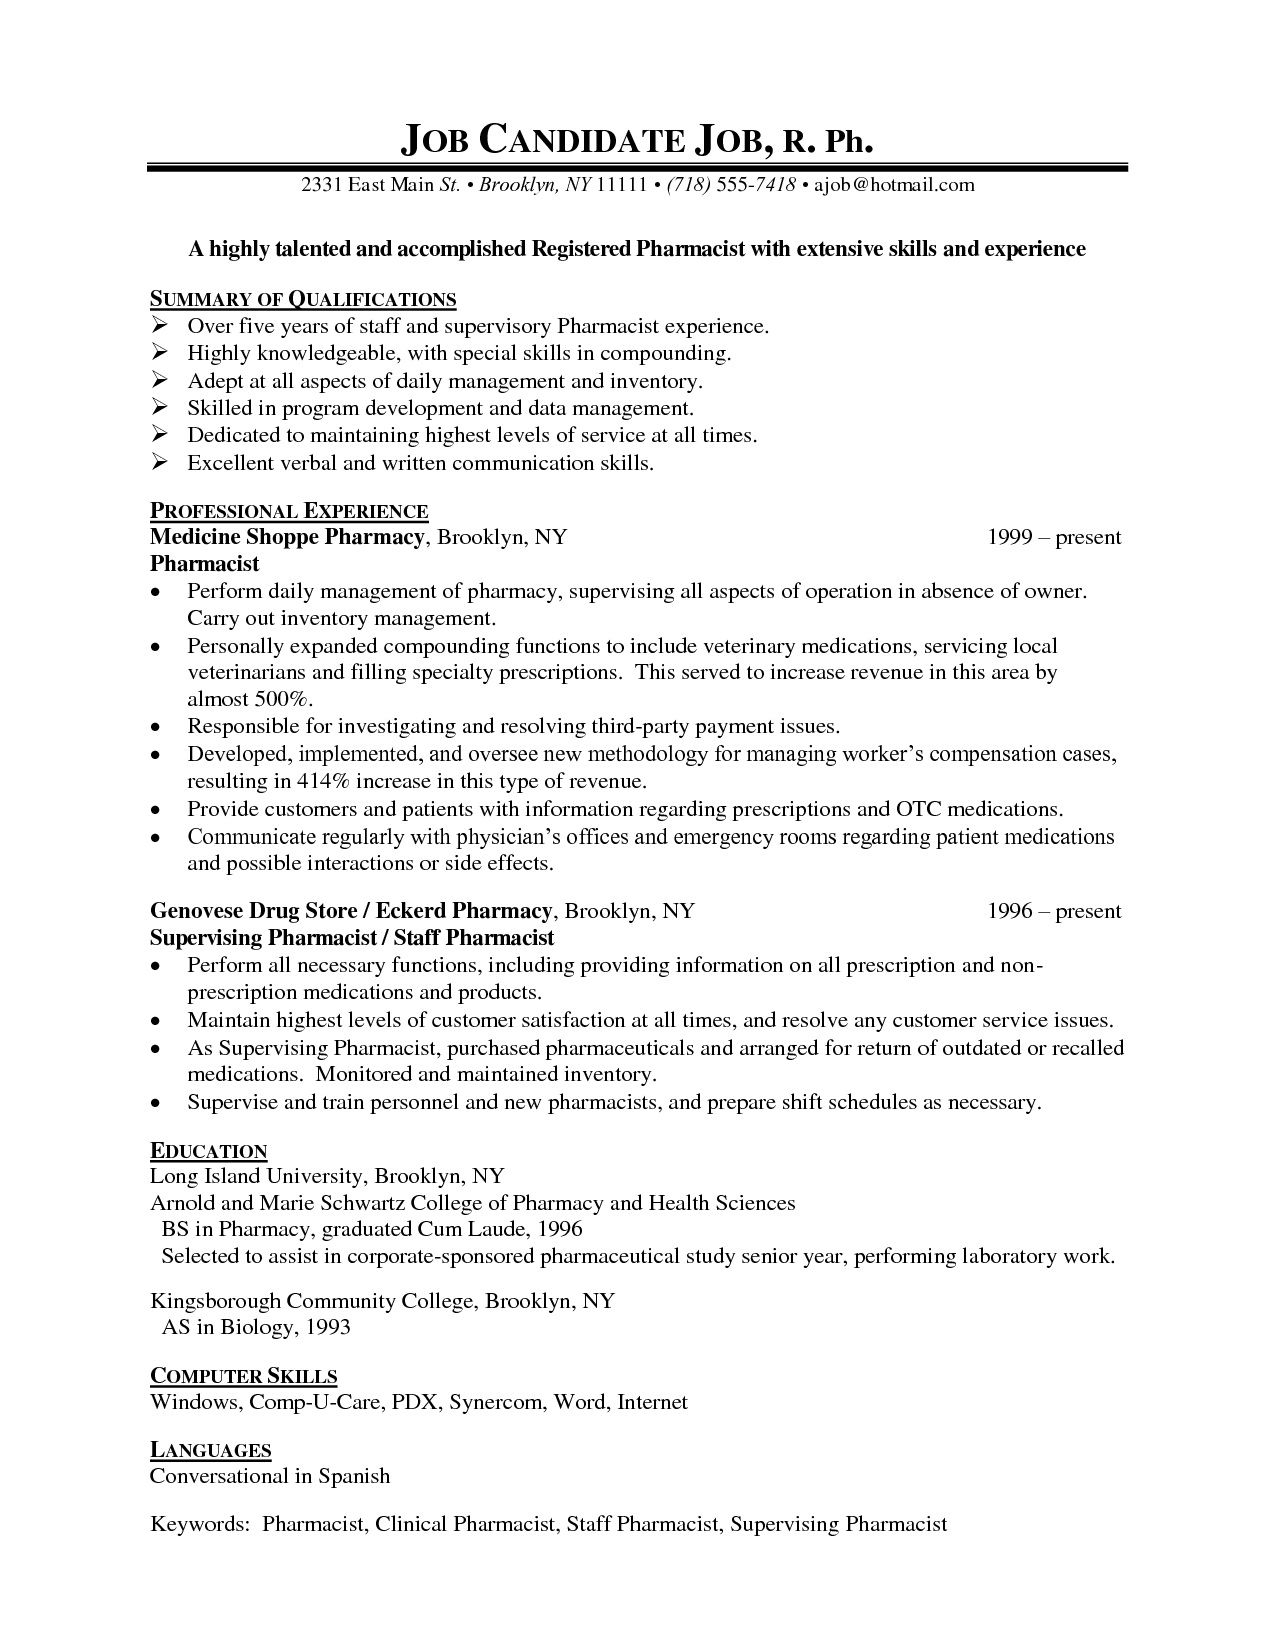 Pharmacist Resume Examples Pintopresumes On Latest Resume  Pinterest  Resume Examples .